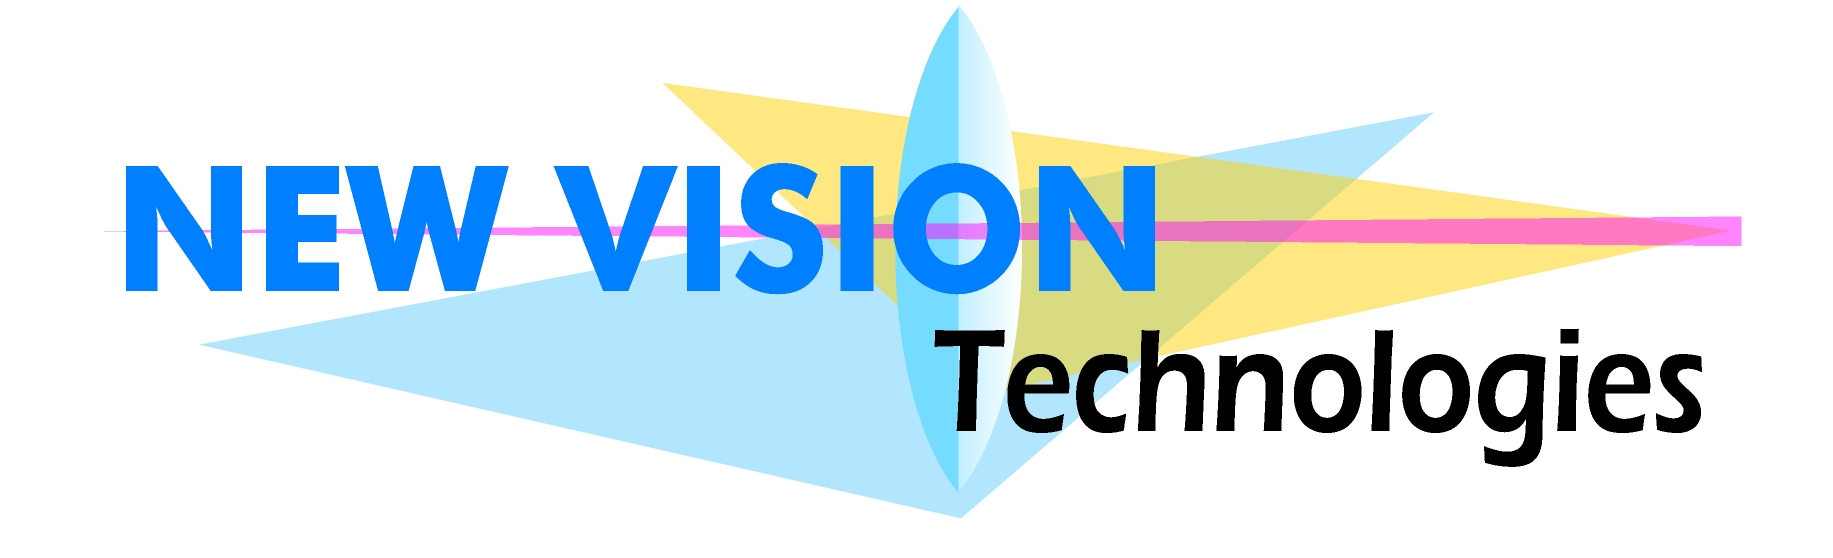 NEW VISION TECHNOLOGIES